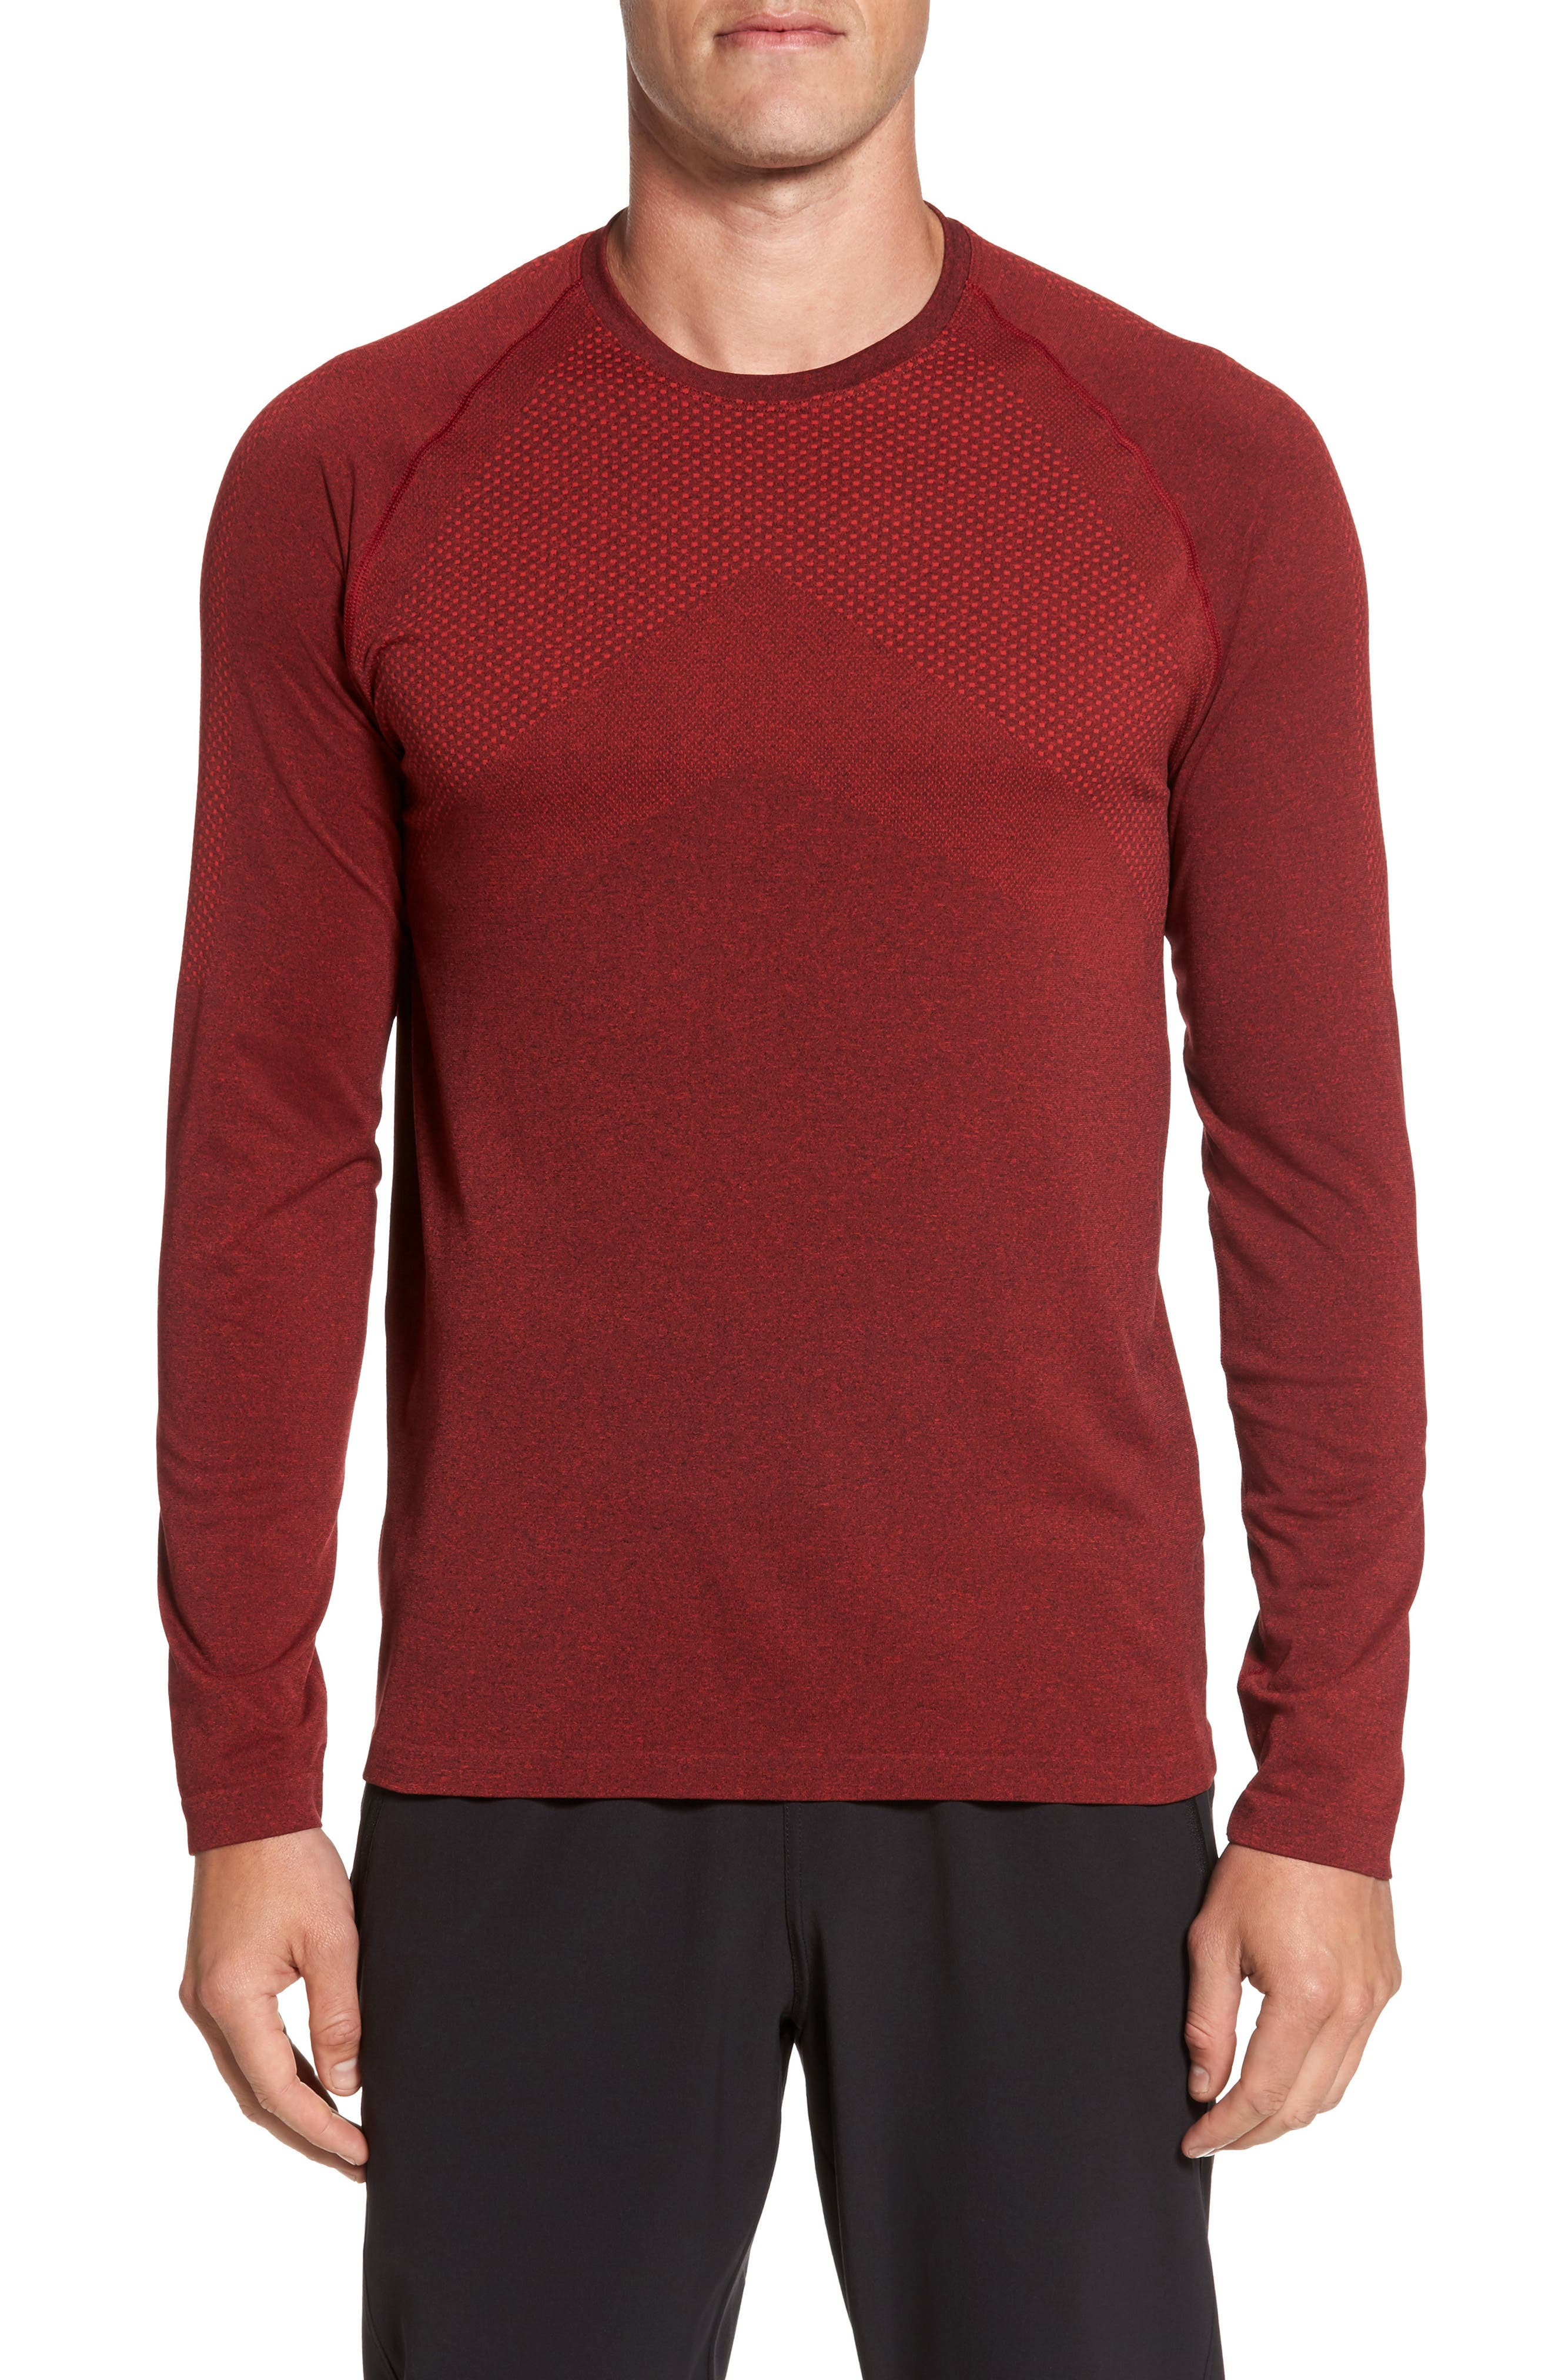 Zella Zeolite Long Sleeve Performance T-Shirt